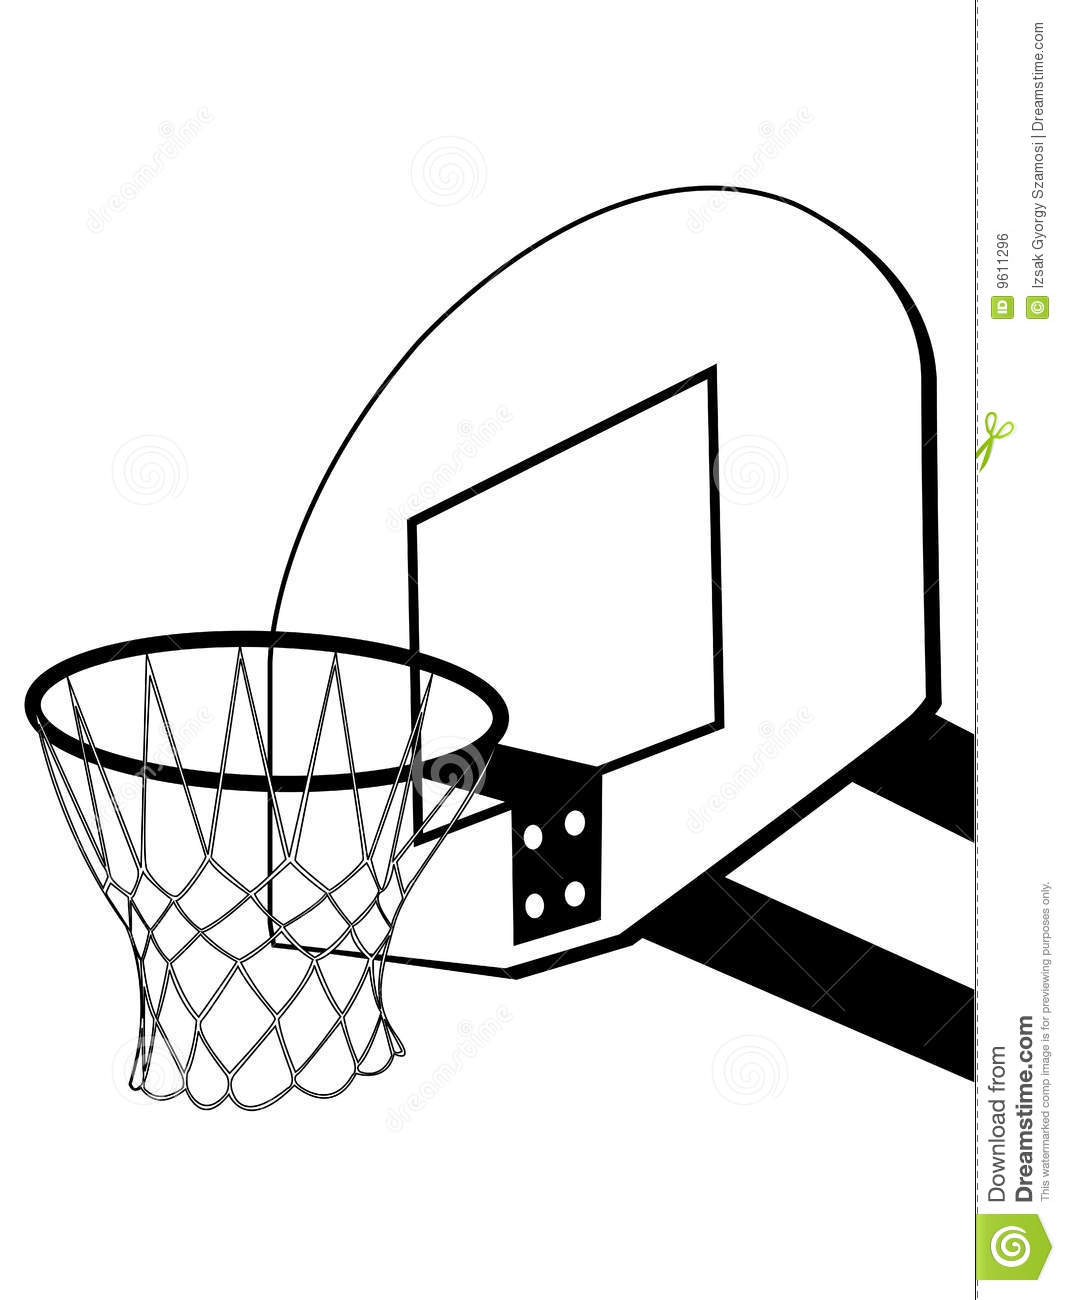 Picture Of A Basketball Hoop.